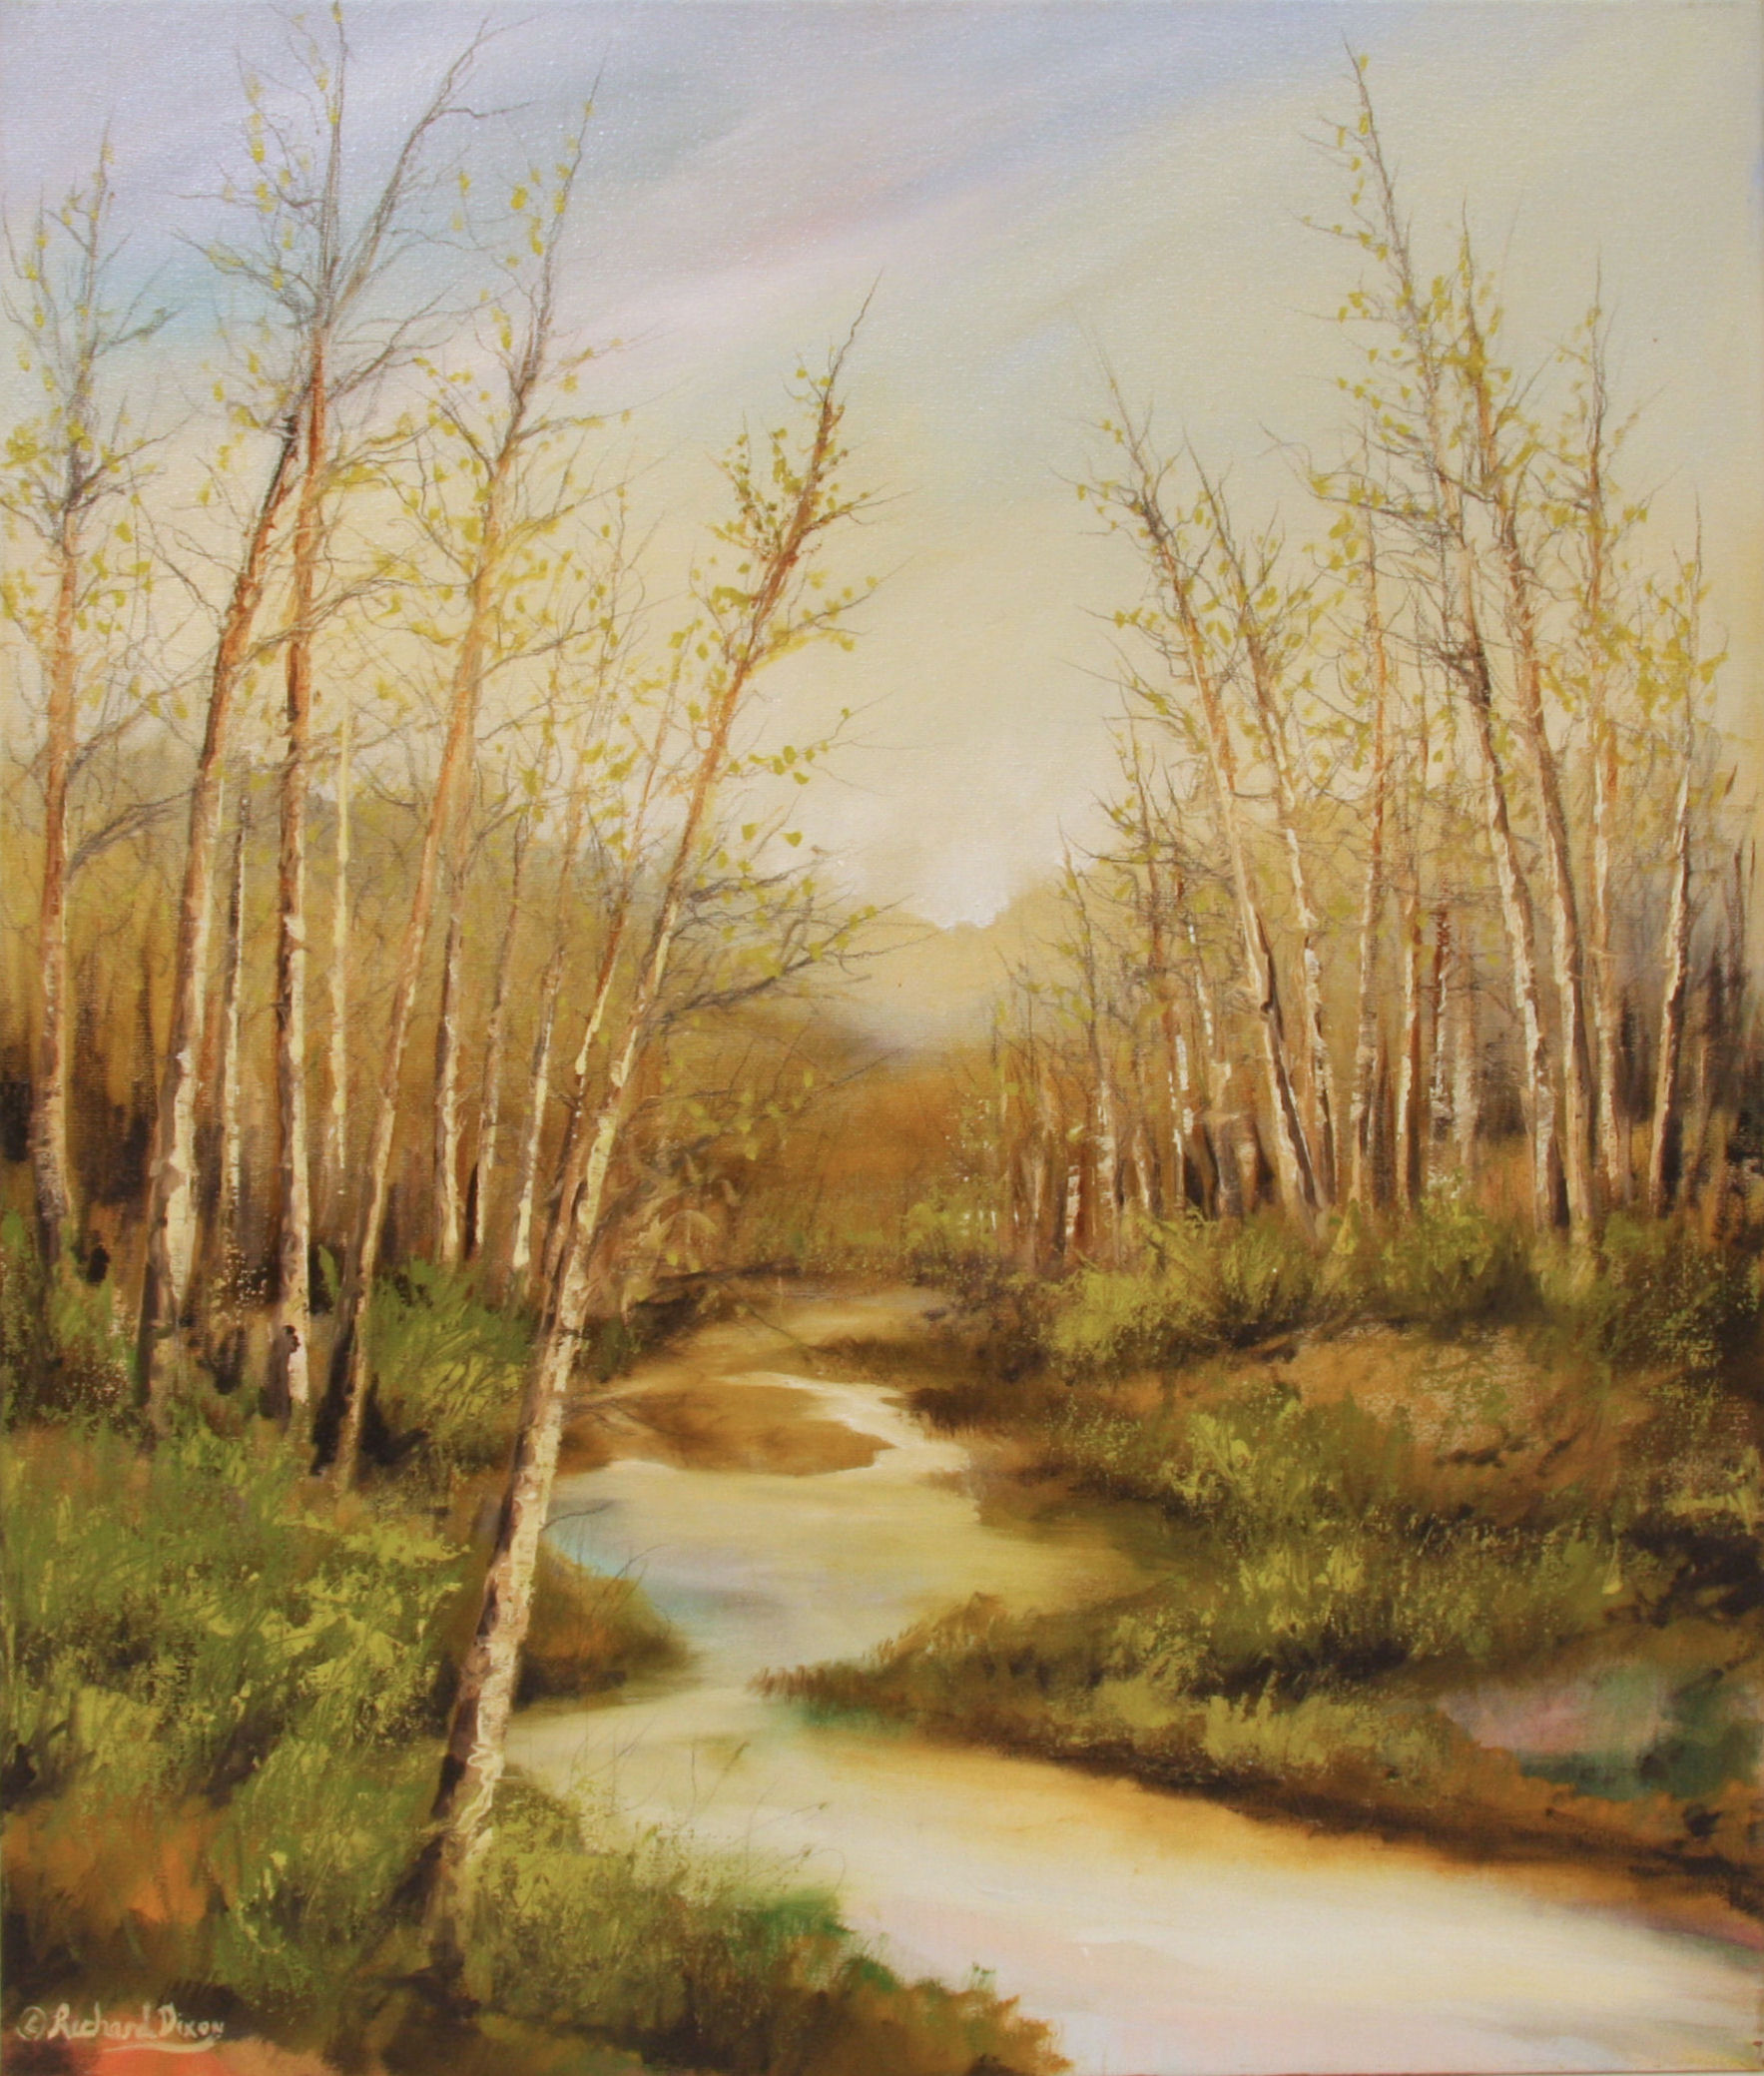 Mill Creek Early Spring oil painting by Richard Dixon